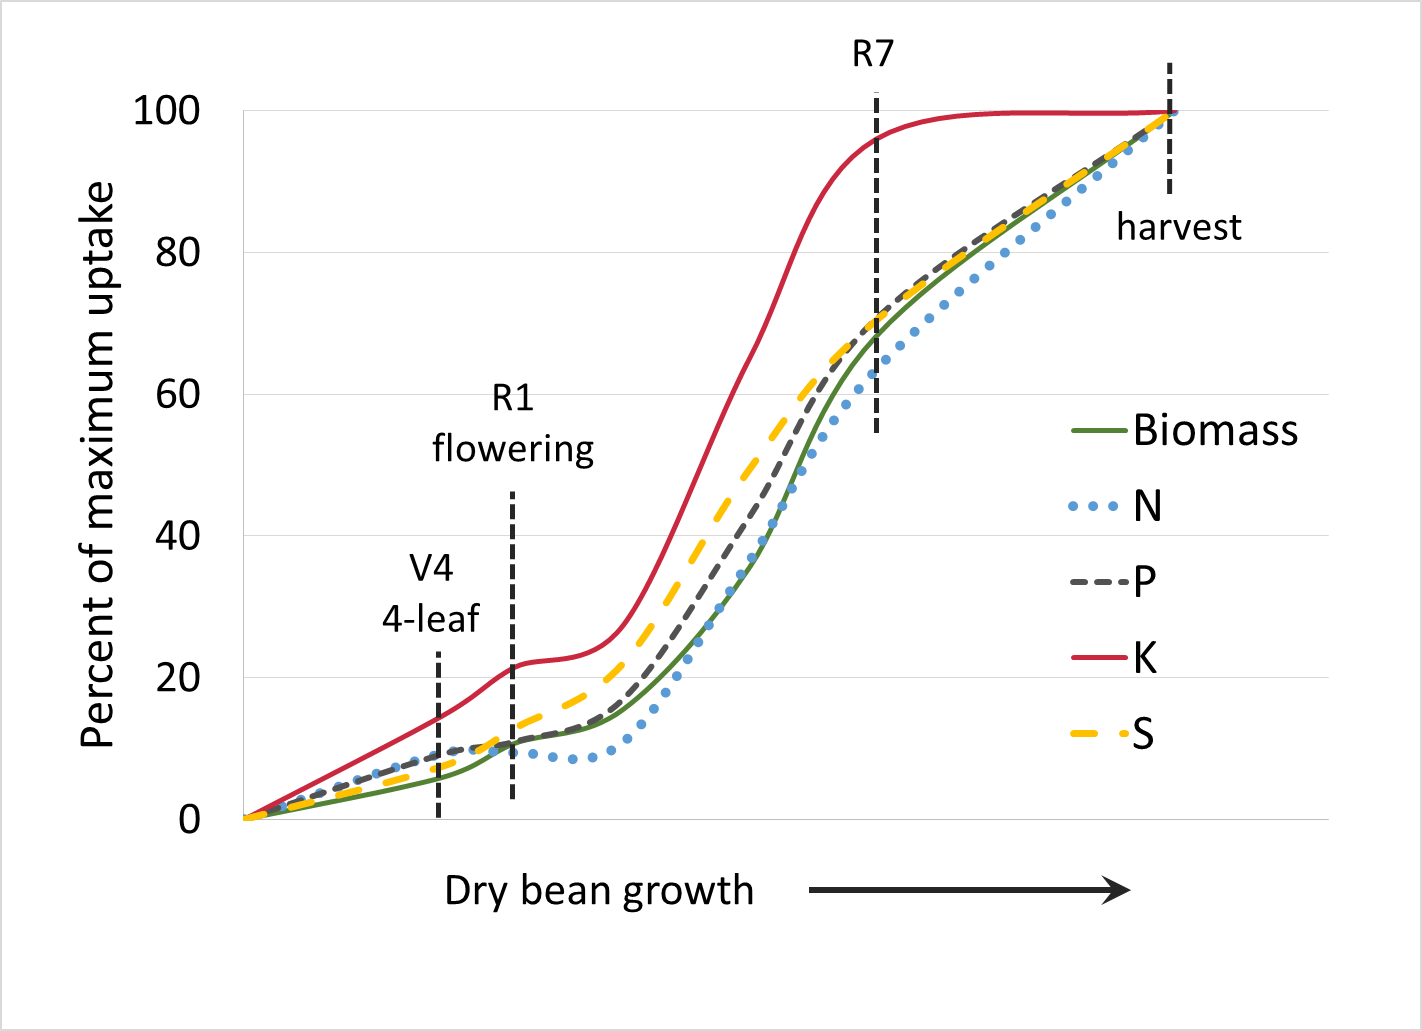 dry bean nutrient uptake